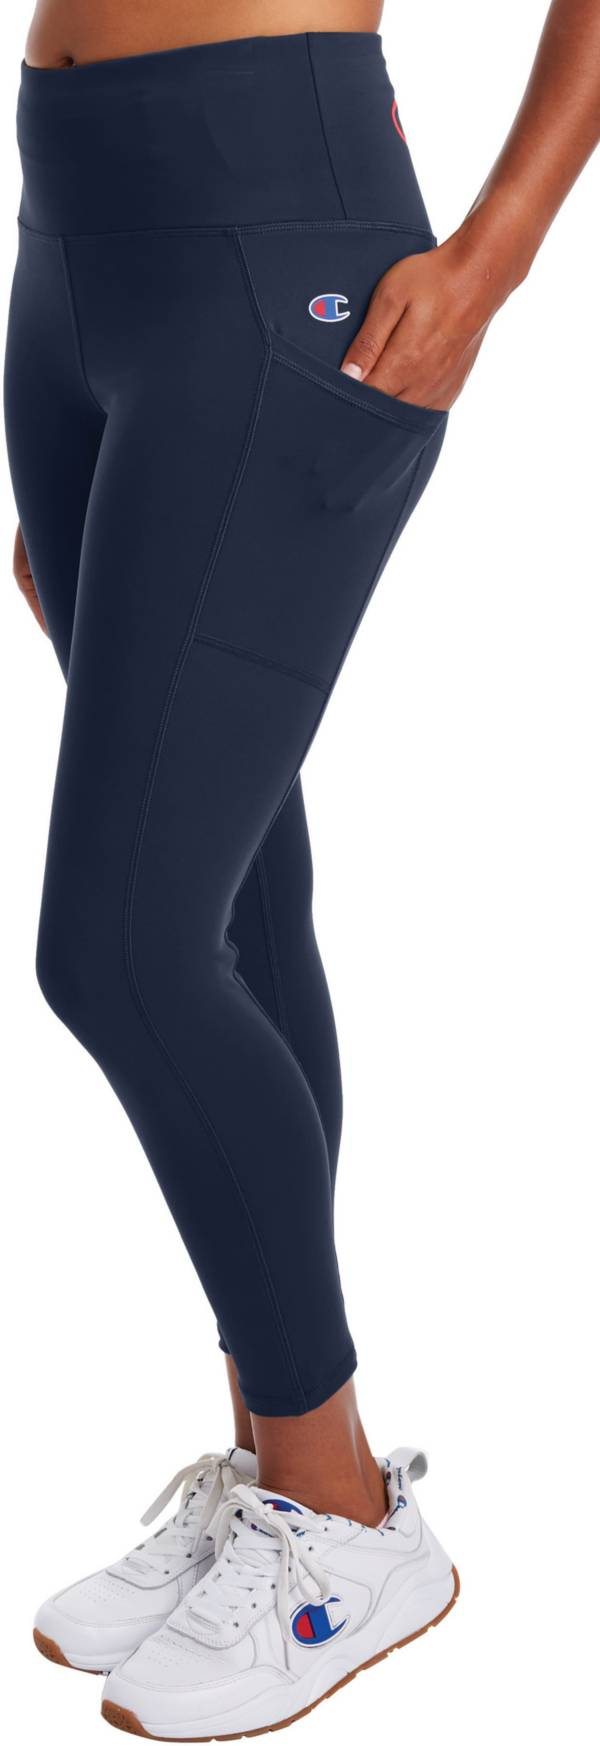 Champion Women's Sport 7/8 Pocket Tights product image